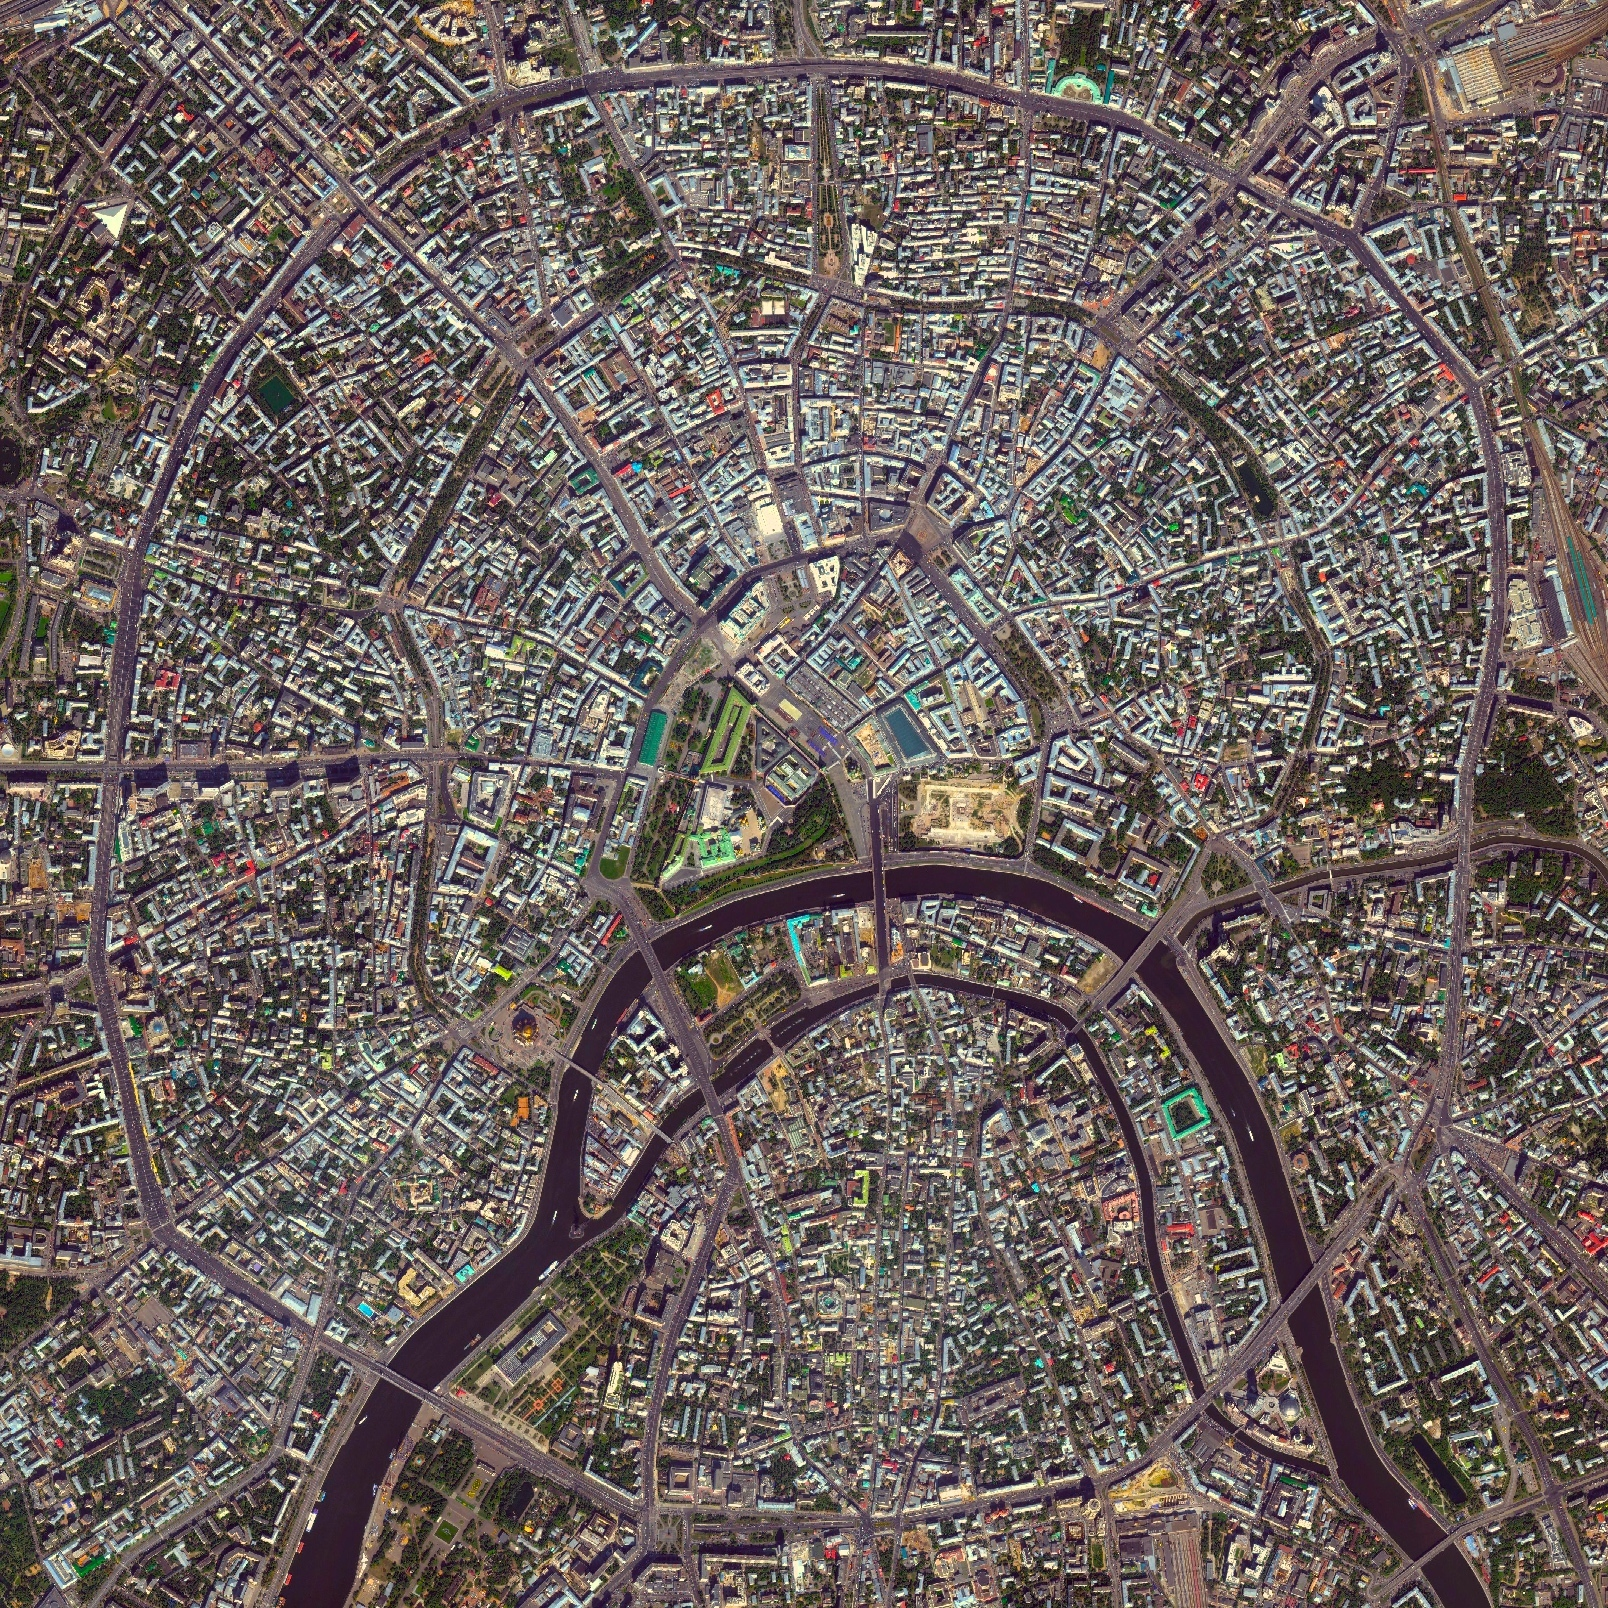 Gallery Of Civilization In Perspective Capturing The World From - Satellite view